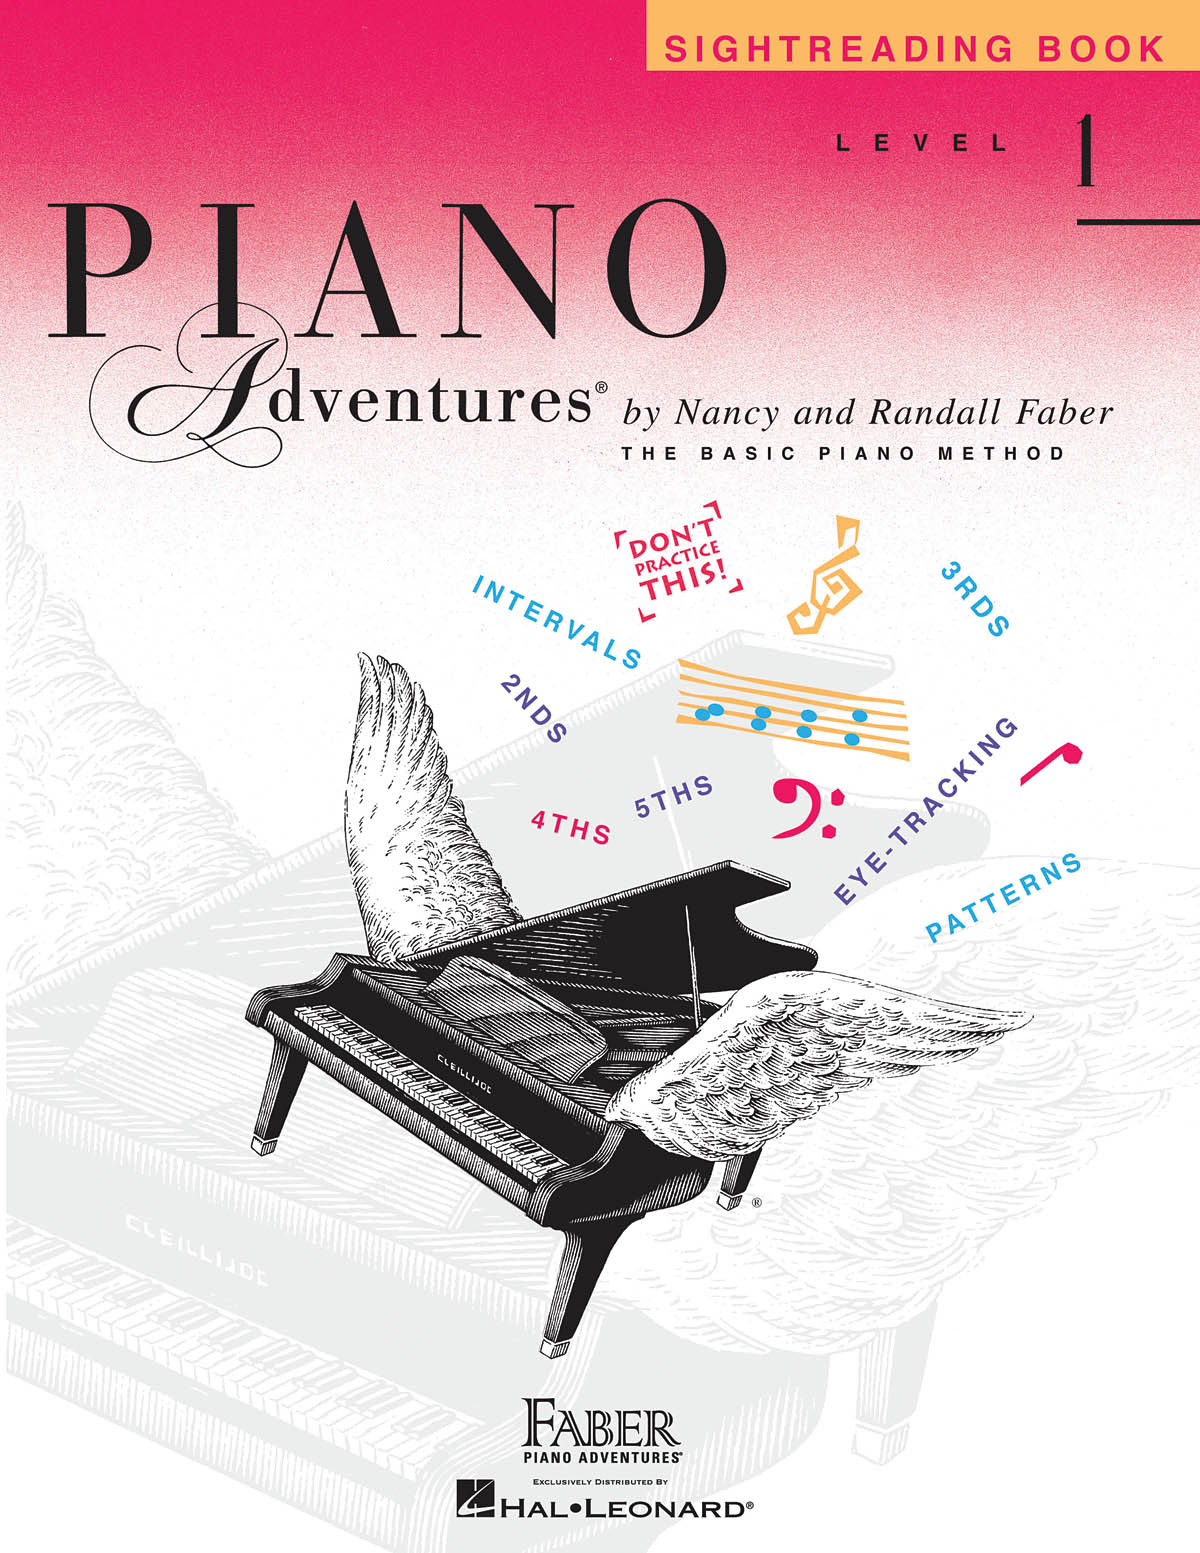 Faber Piano Adventures, Sightreading Book, Level 1